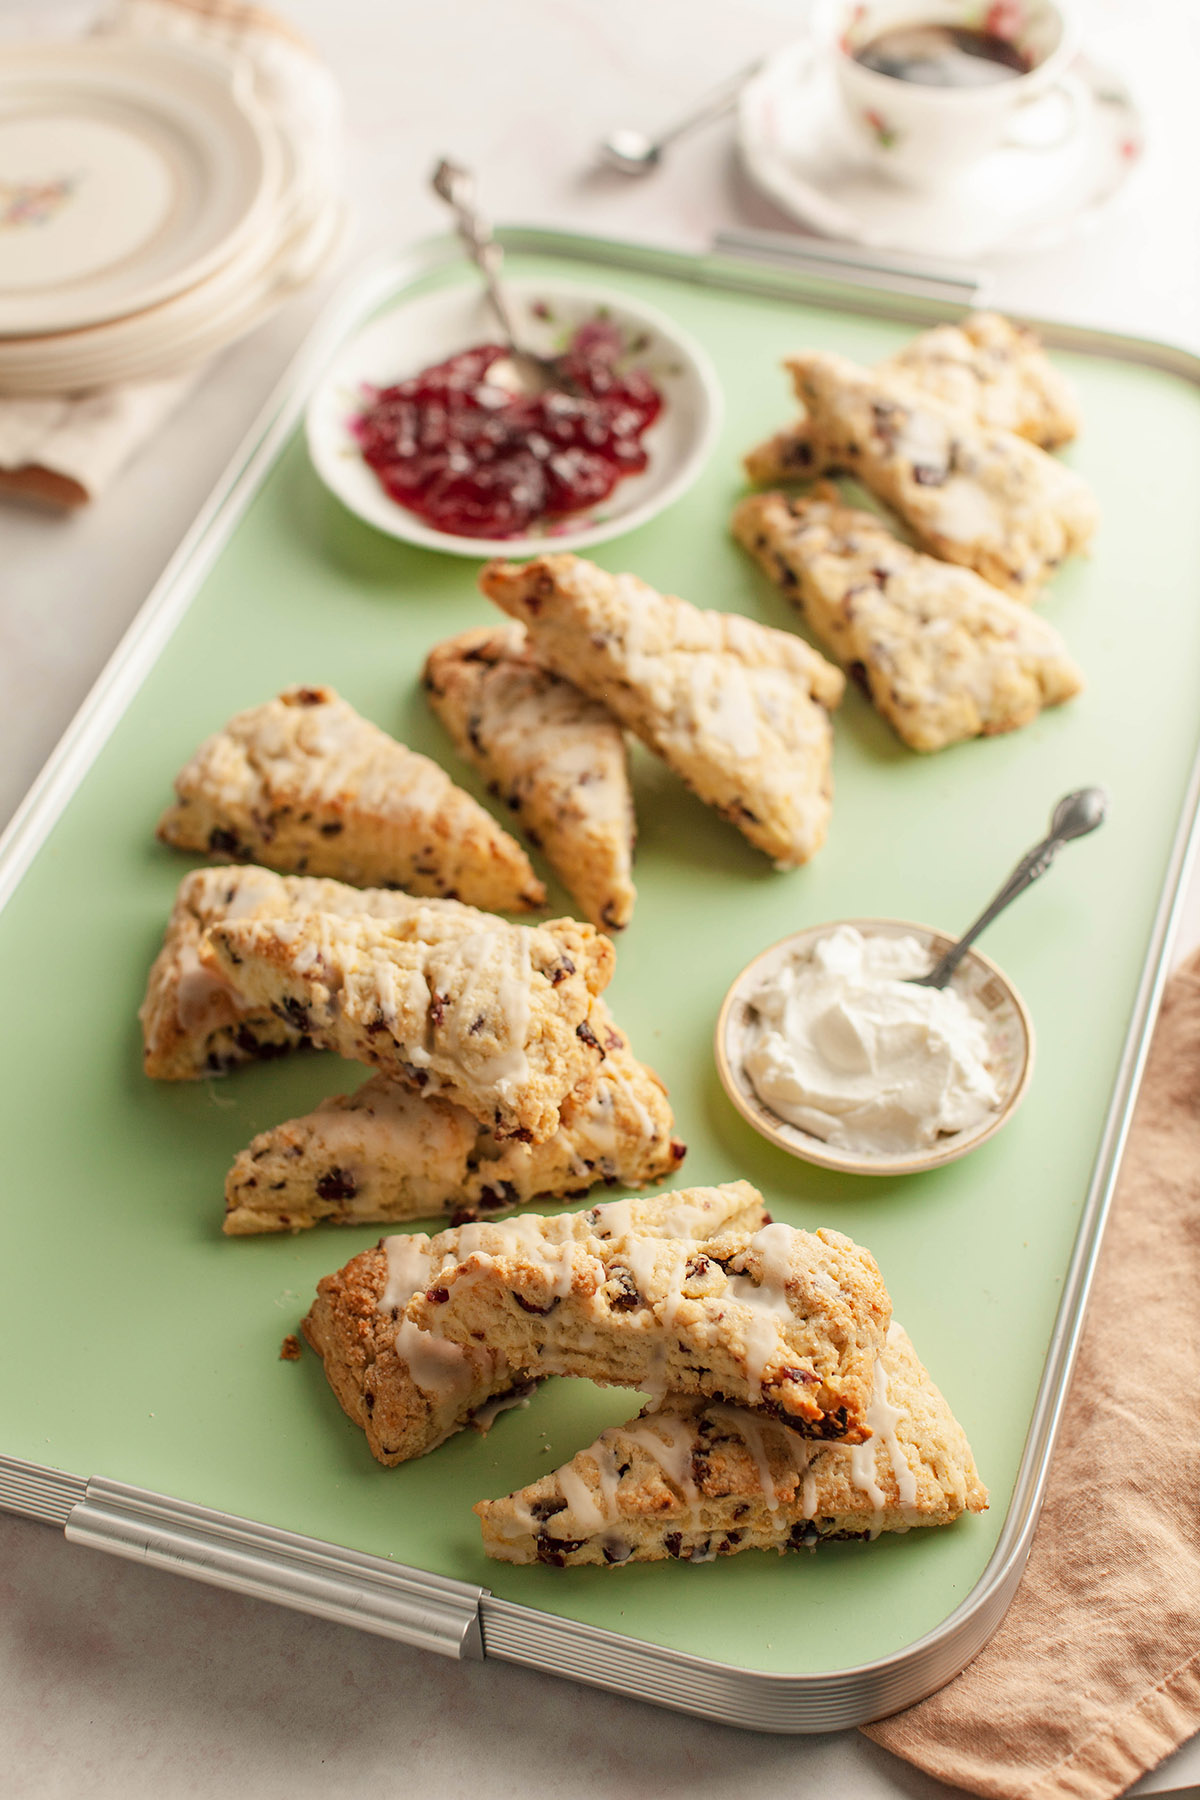 Cranberry, Pistachio and Orange Scones